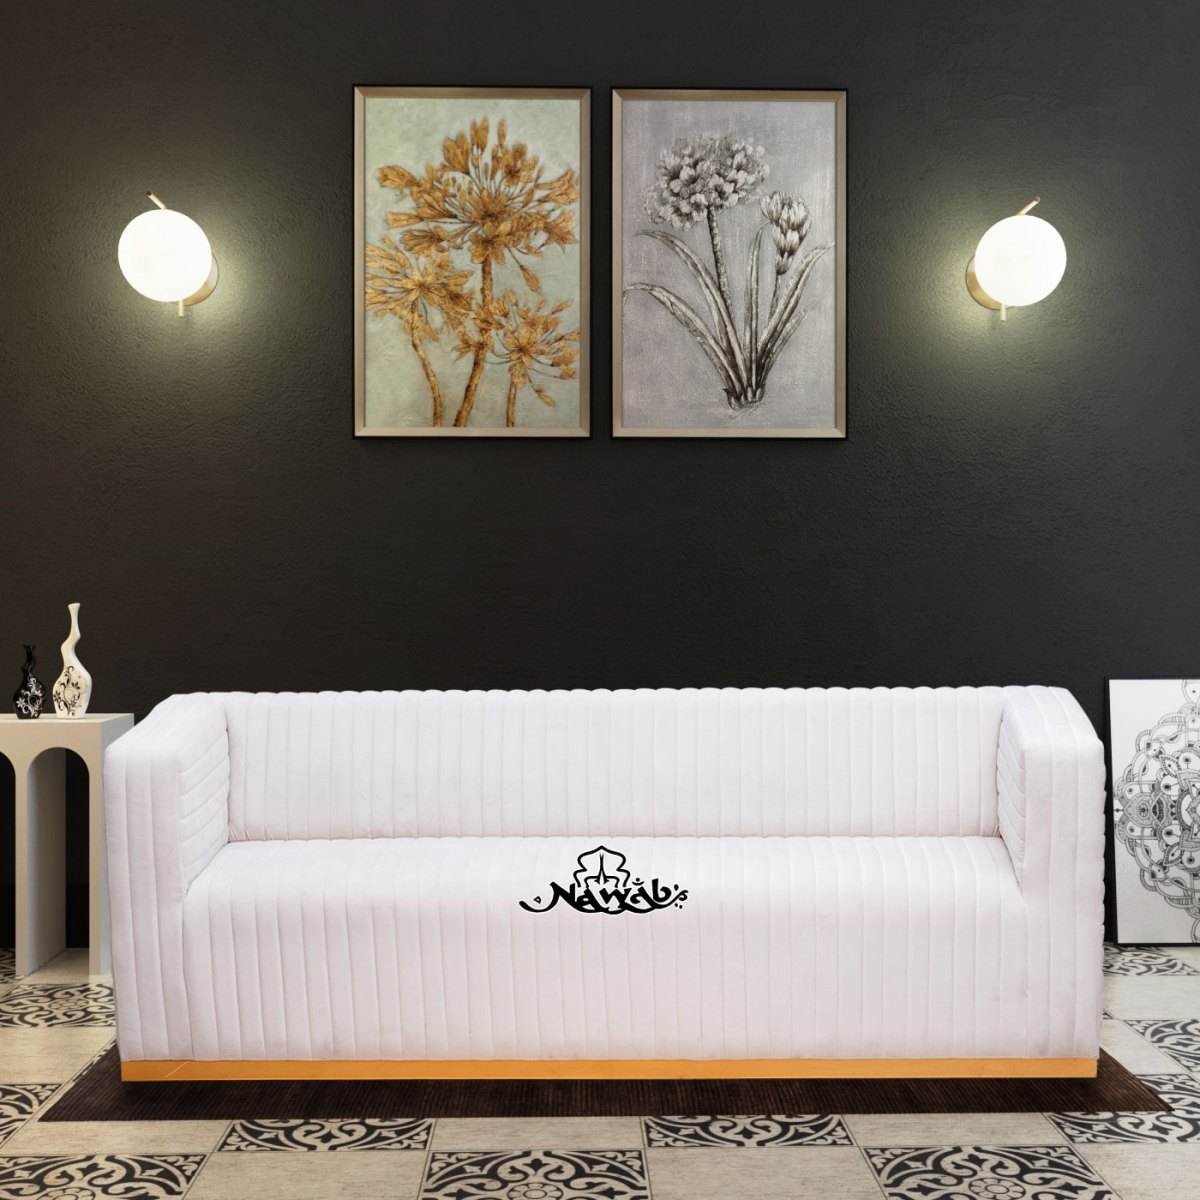 Suede-fabric-wooden-frame-with-foam-padding-teak-wood-legs-backgground